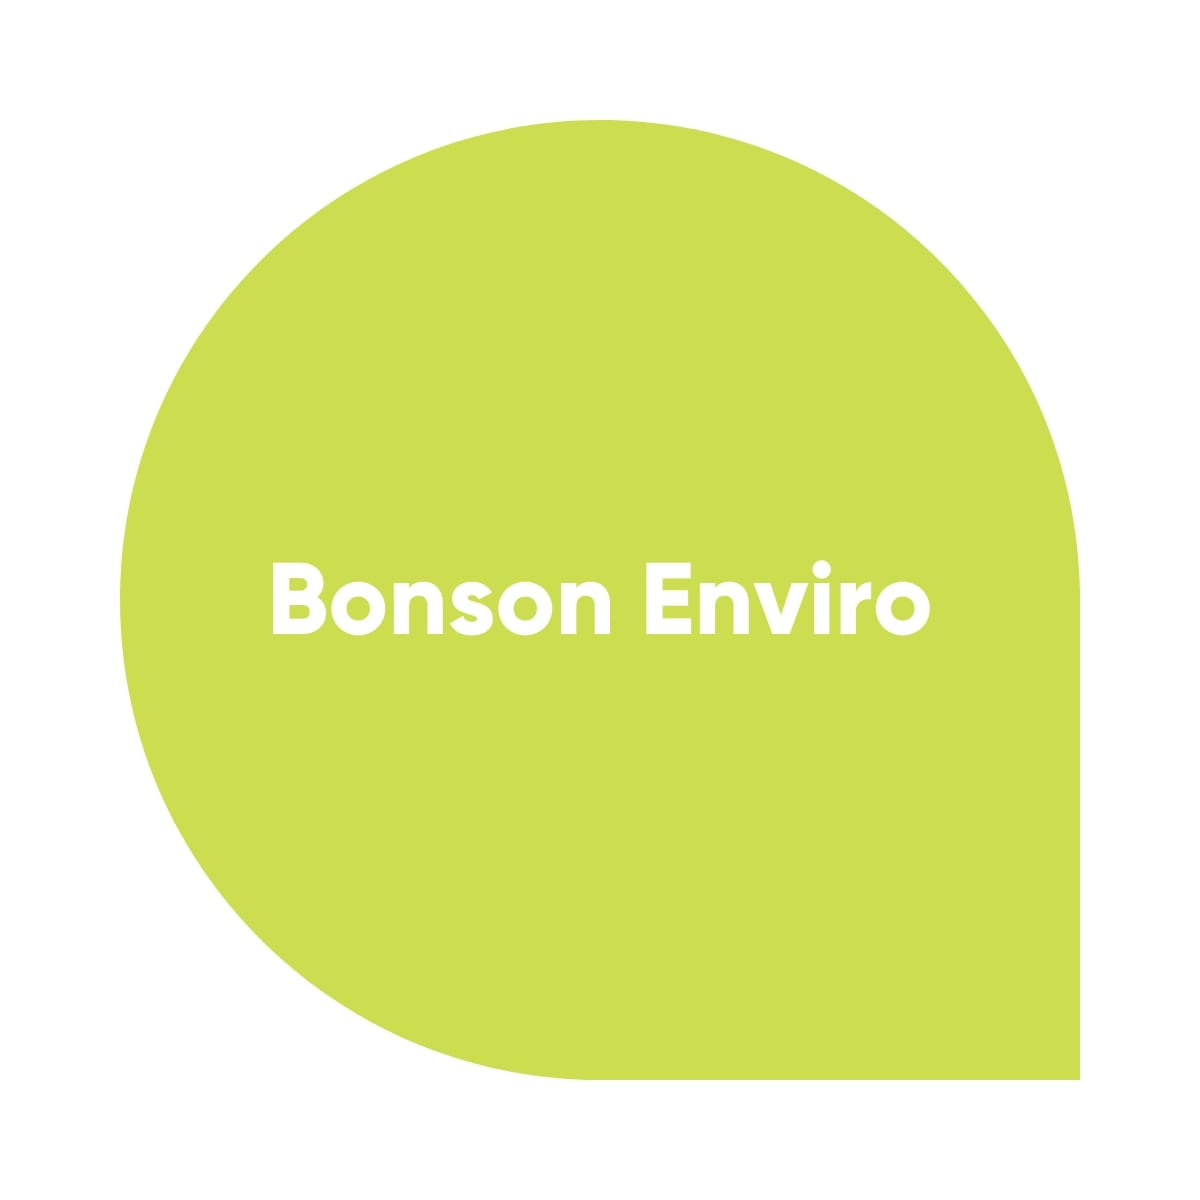 Bonson_enviro-teardot